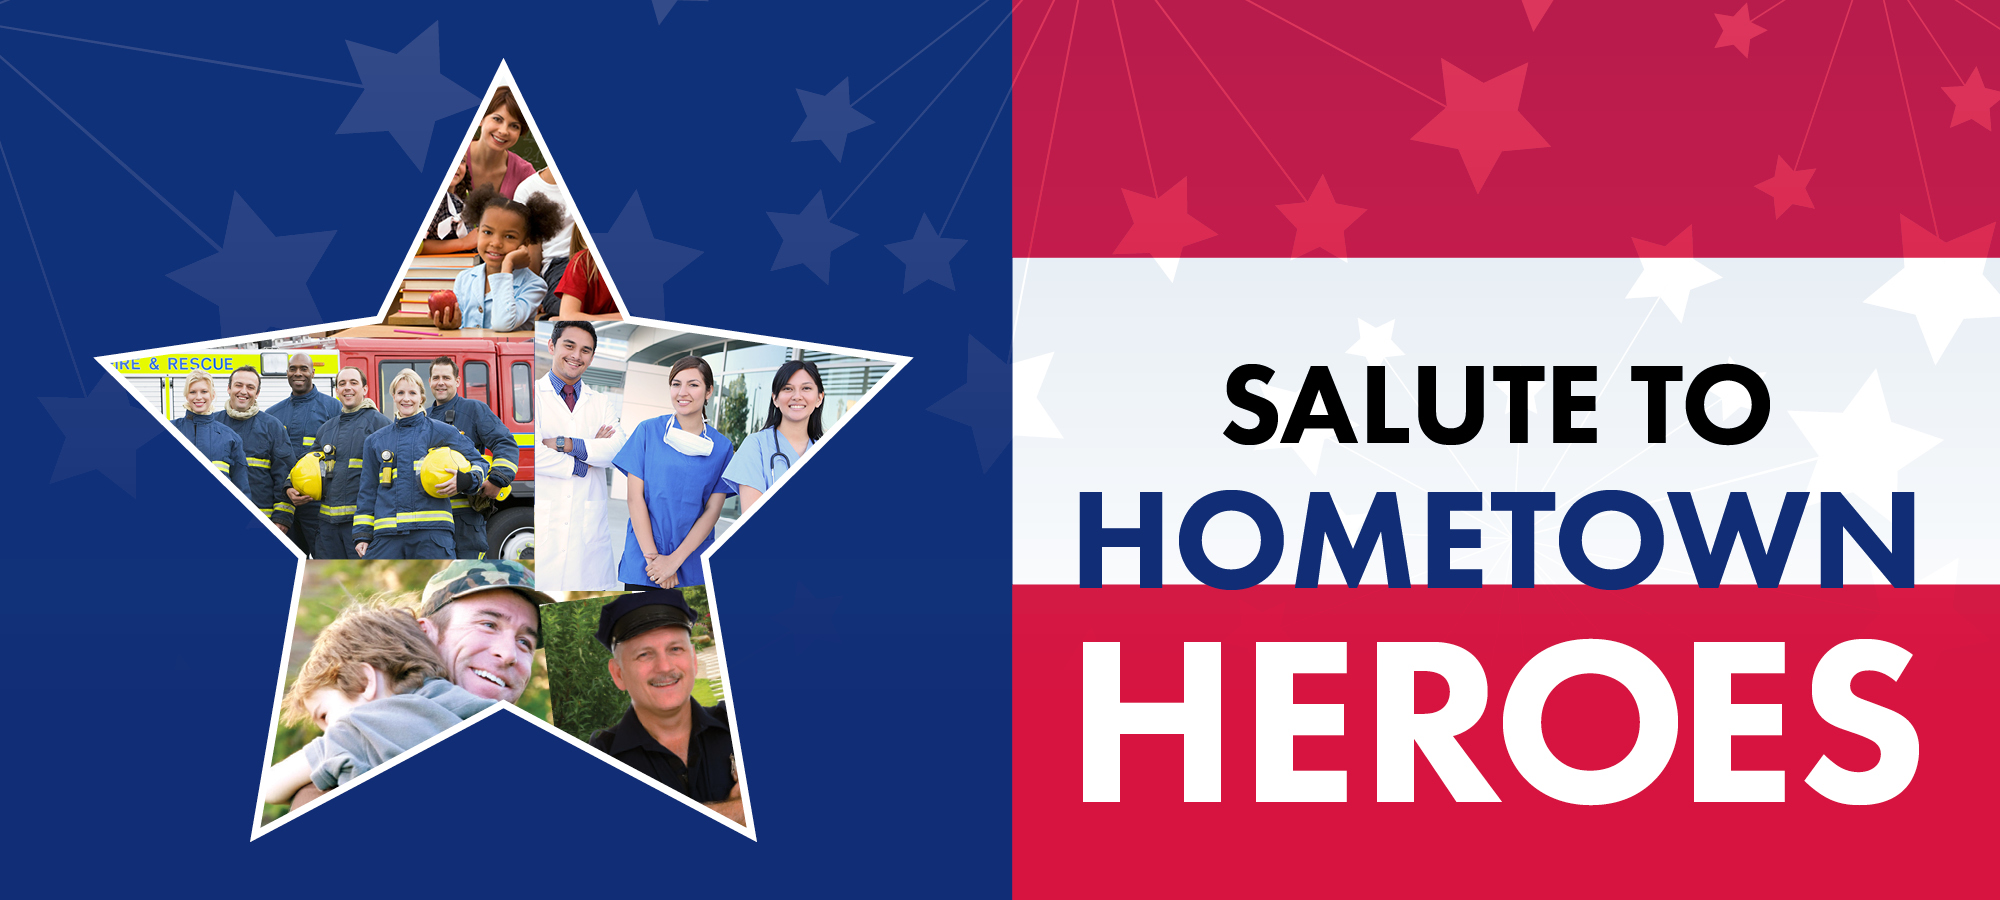 Salute to Hometown Heroes in Colorado Springs